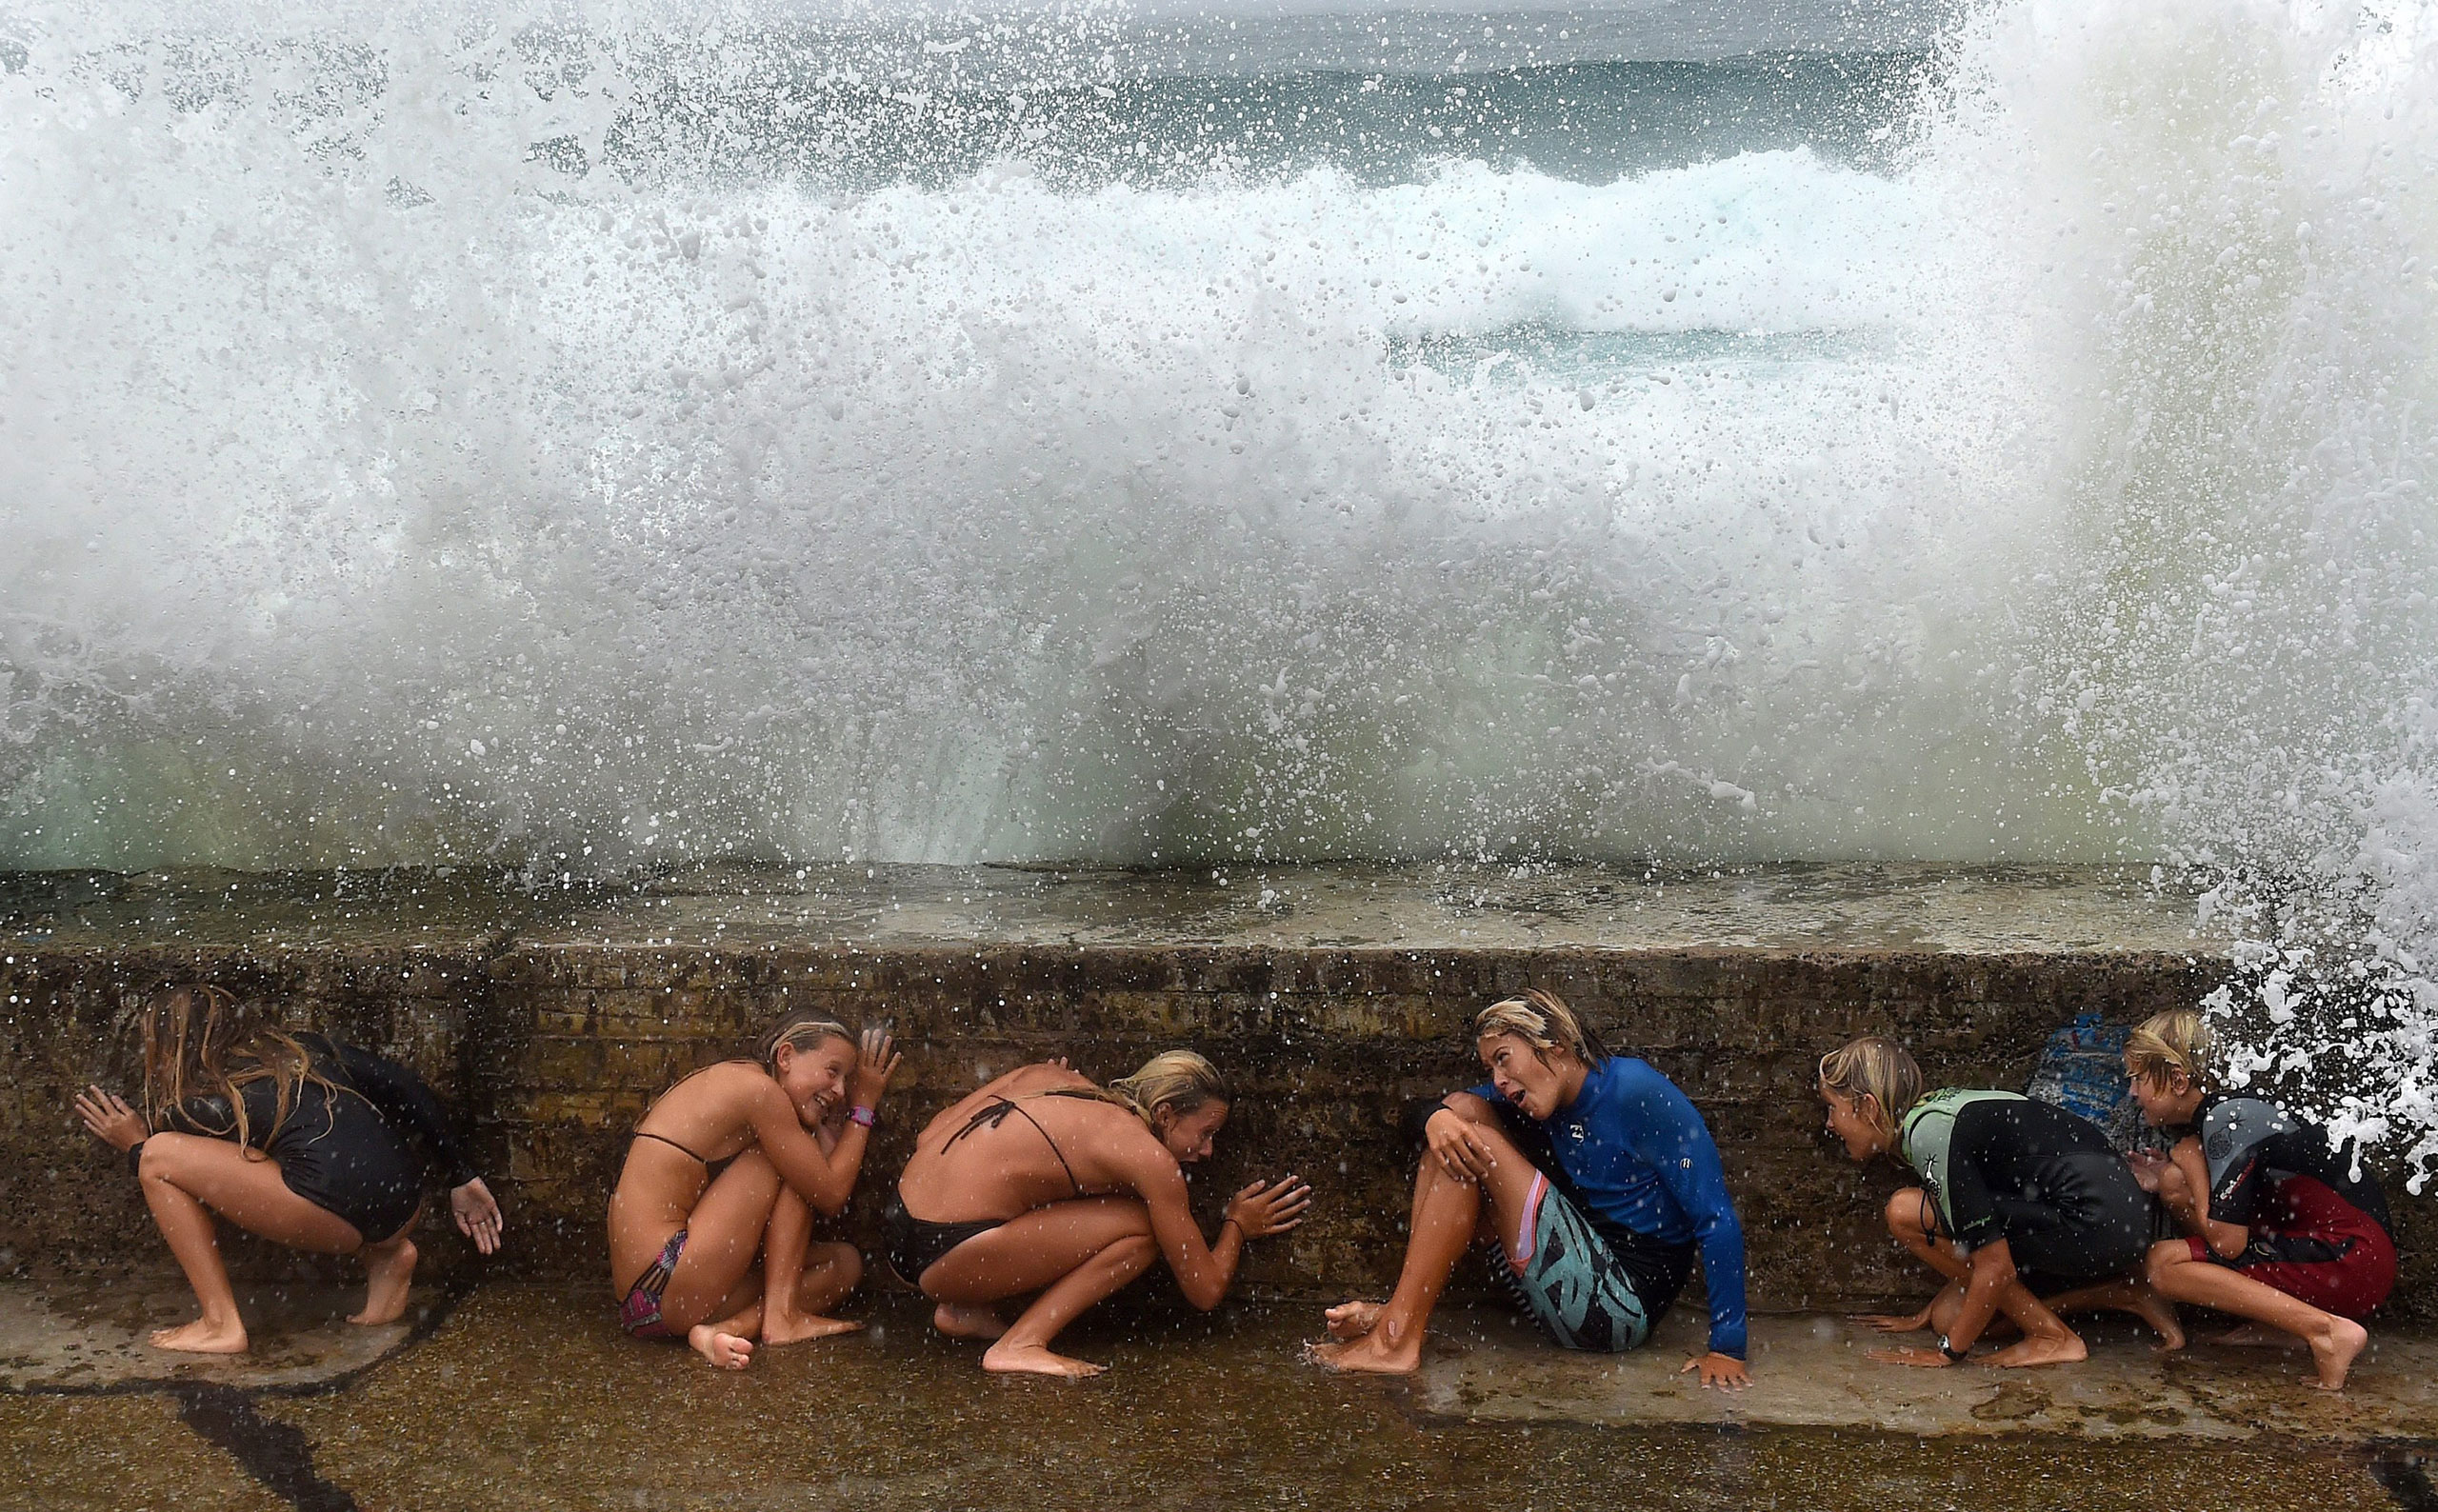 A young crowd takes shelter from big sea waves due to the Tropical Cyclone Marcia on the Gold Coast, Queensland, Australia. Feb. 20, 2015.